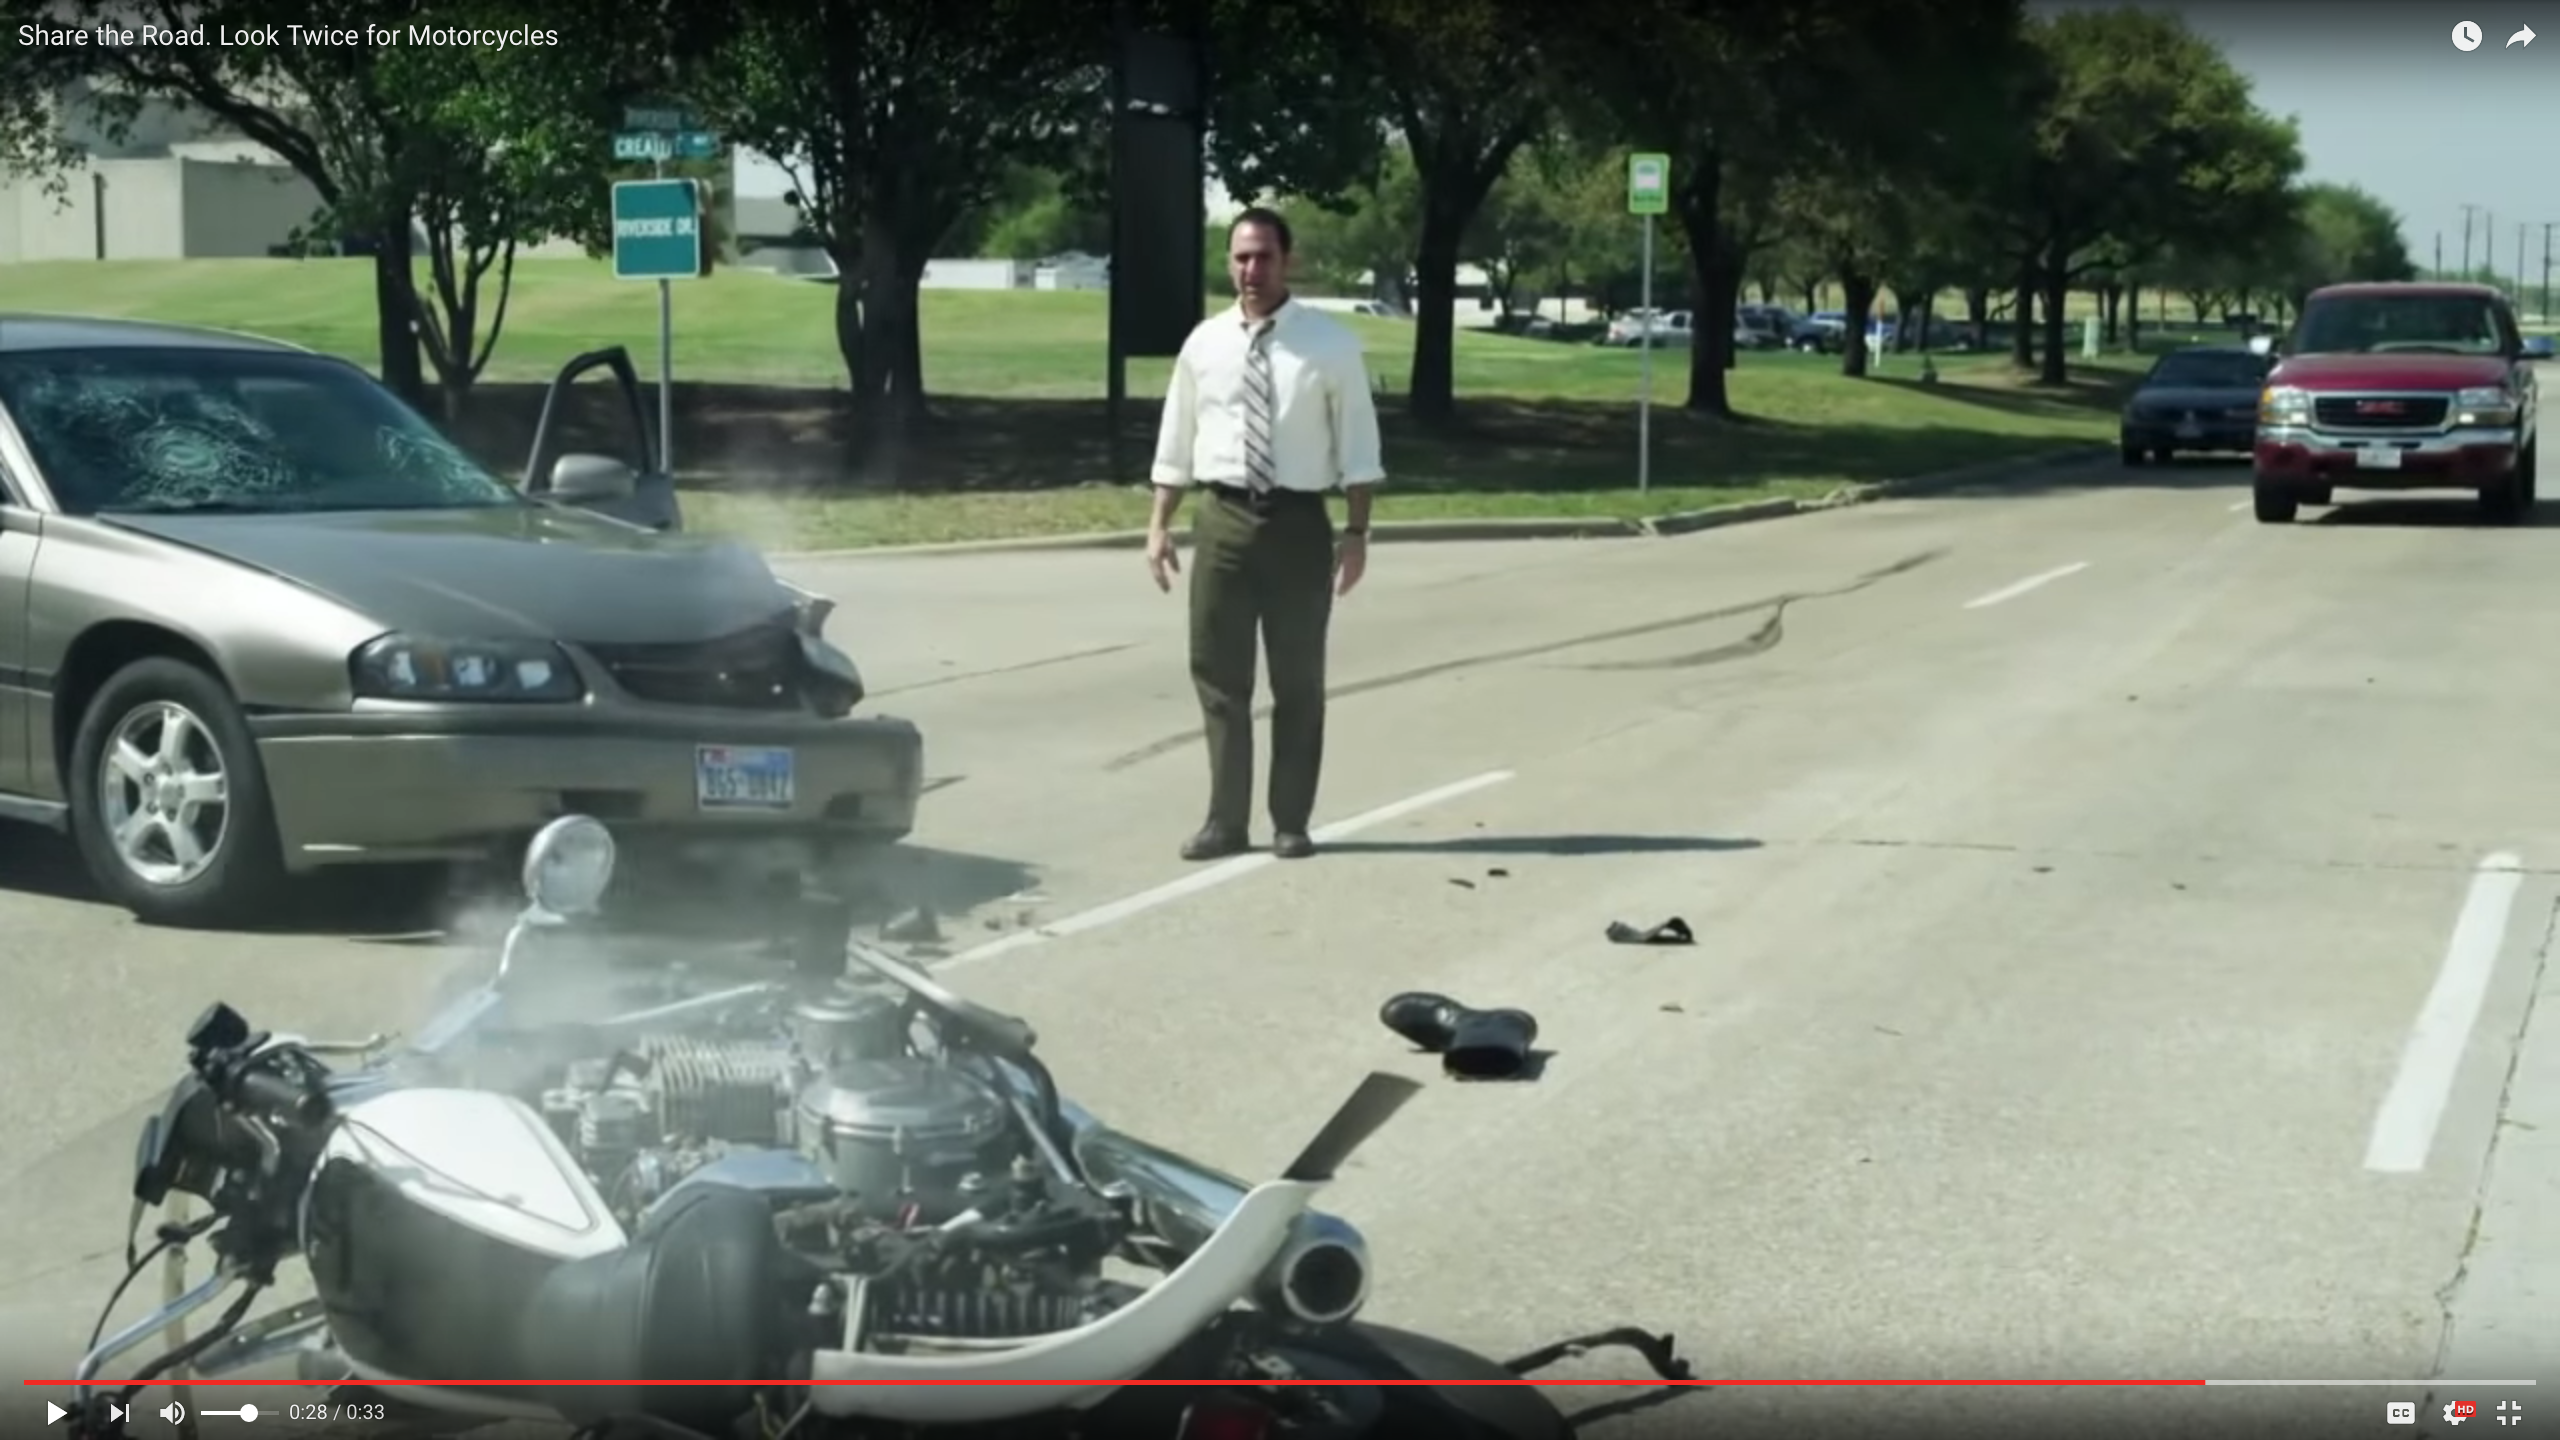 Look Twice for Motorcycles